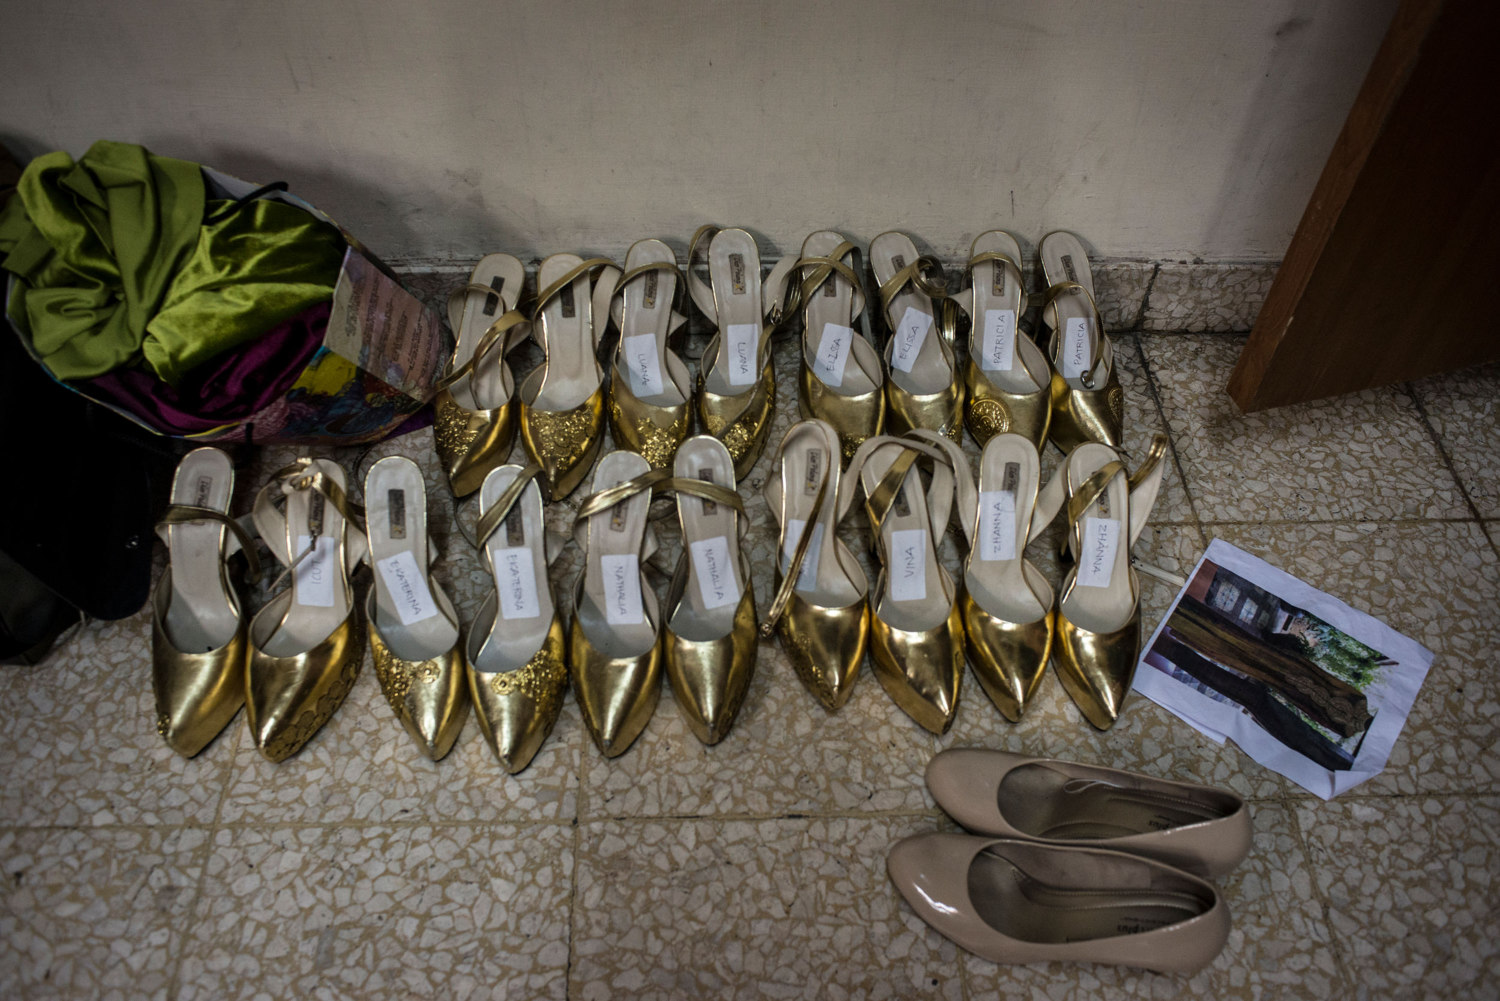 Shoes are labeled and laid out in preparations for the Grand Finale on November 21st, 2014 in Yogakarta, Indonesia.